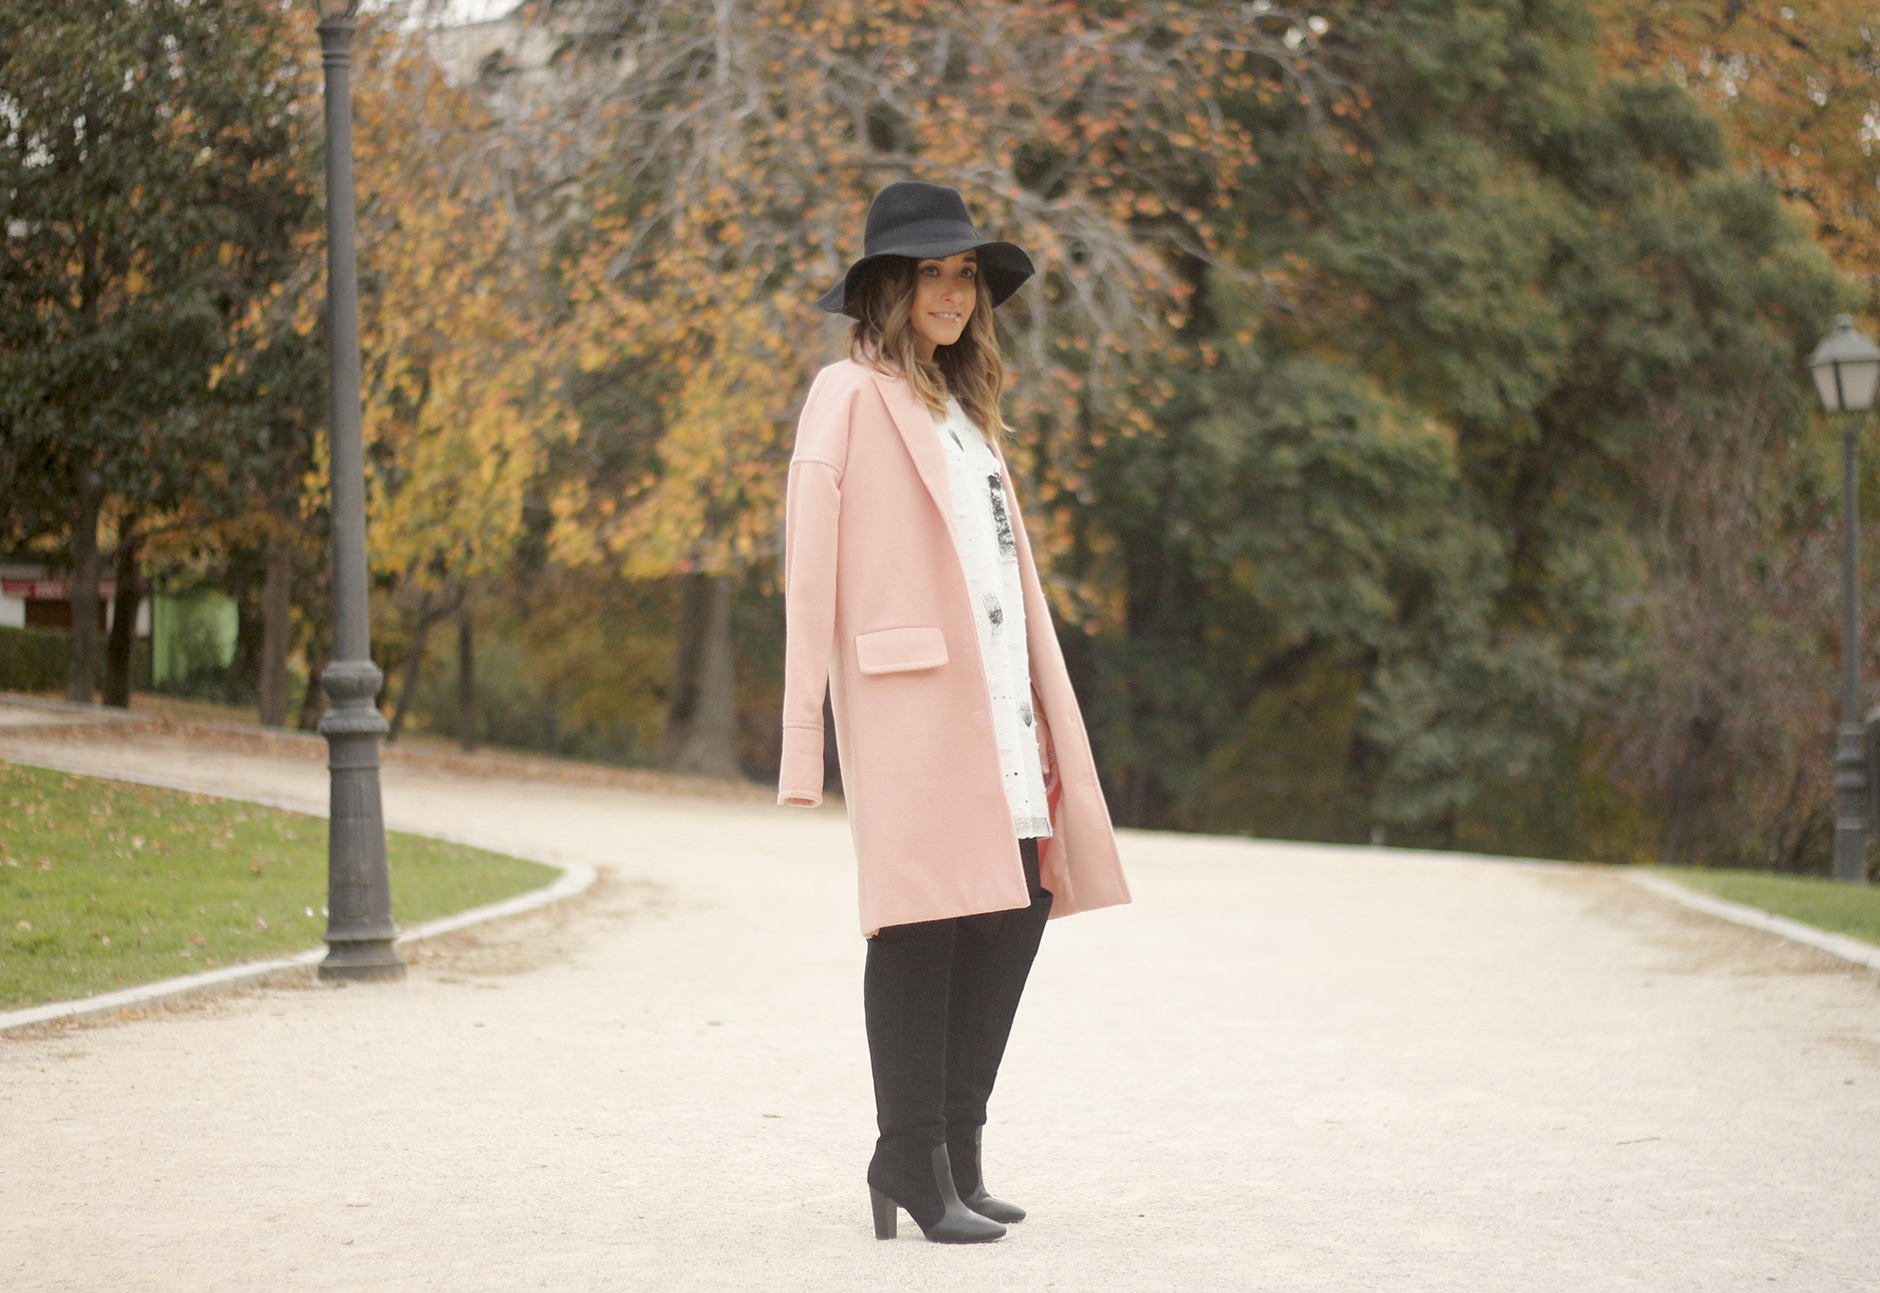 Black and White Dress Pink Coat Black Hat outfit style over the knees boots02